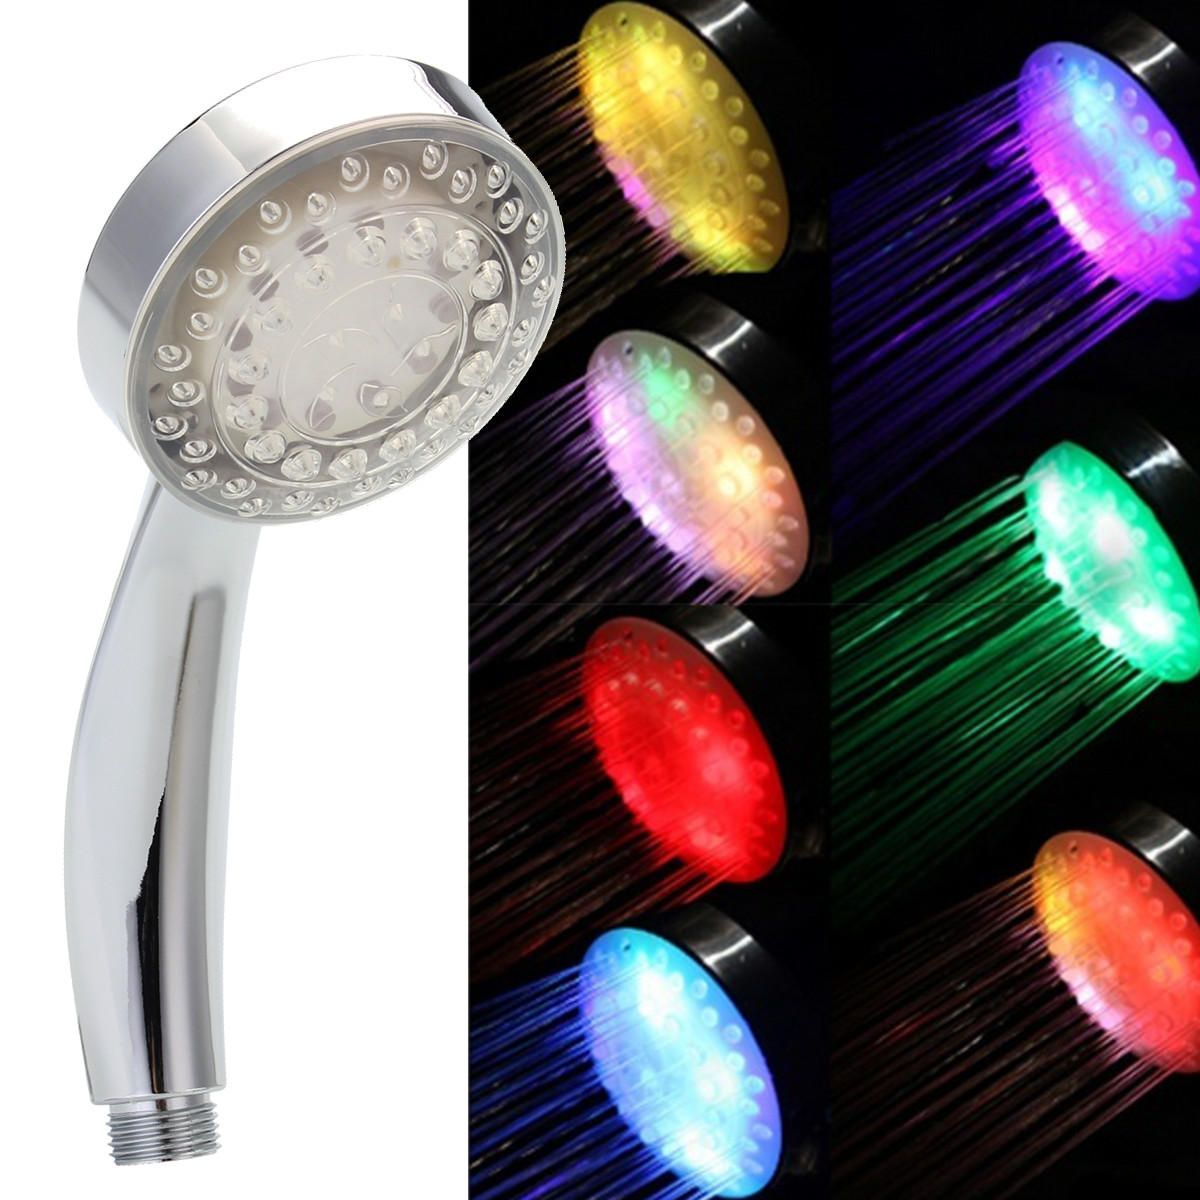 7 Colors Automatic Changing Led Shower Head Bathroom Shower Water Saving Spray Led Shower Head Shower Heads Water Saving Shower Head